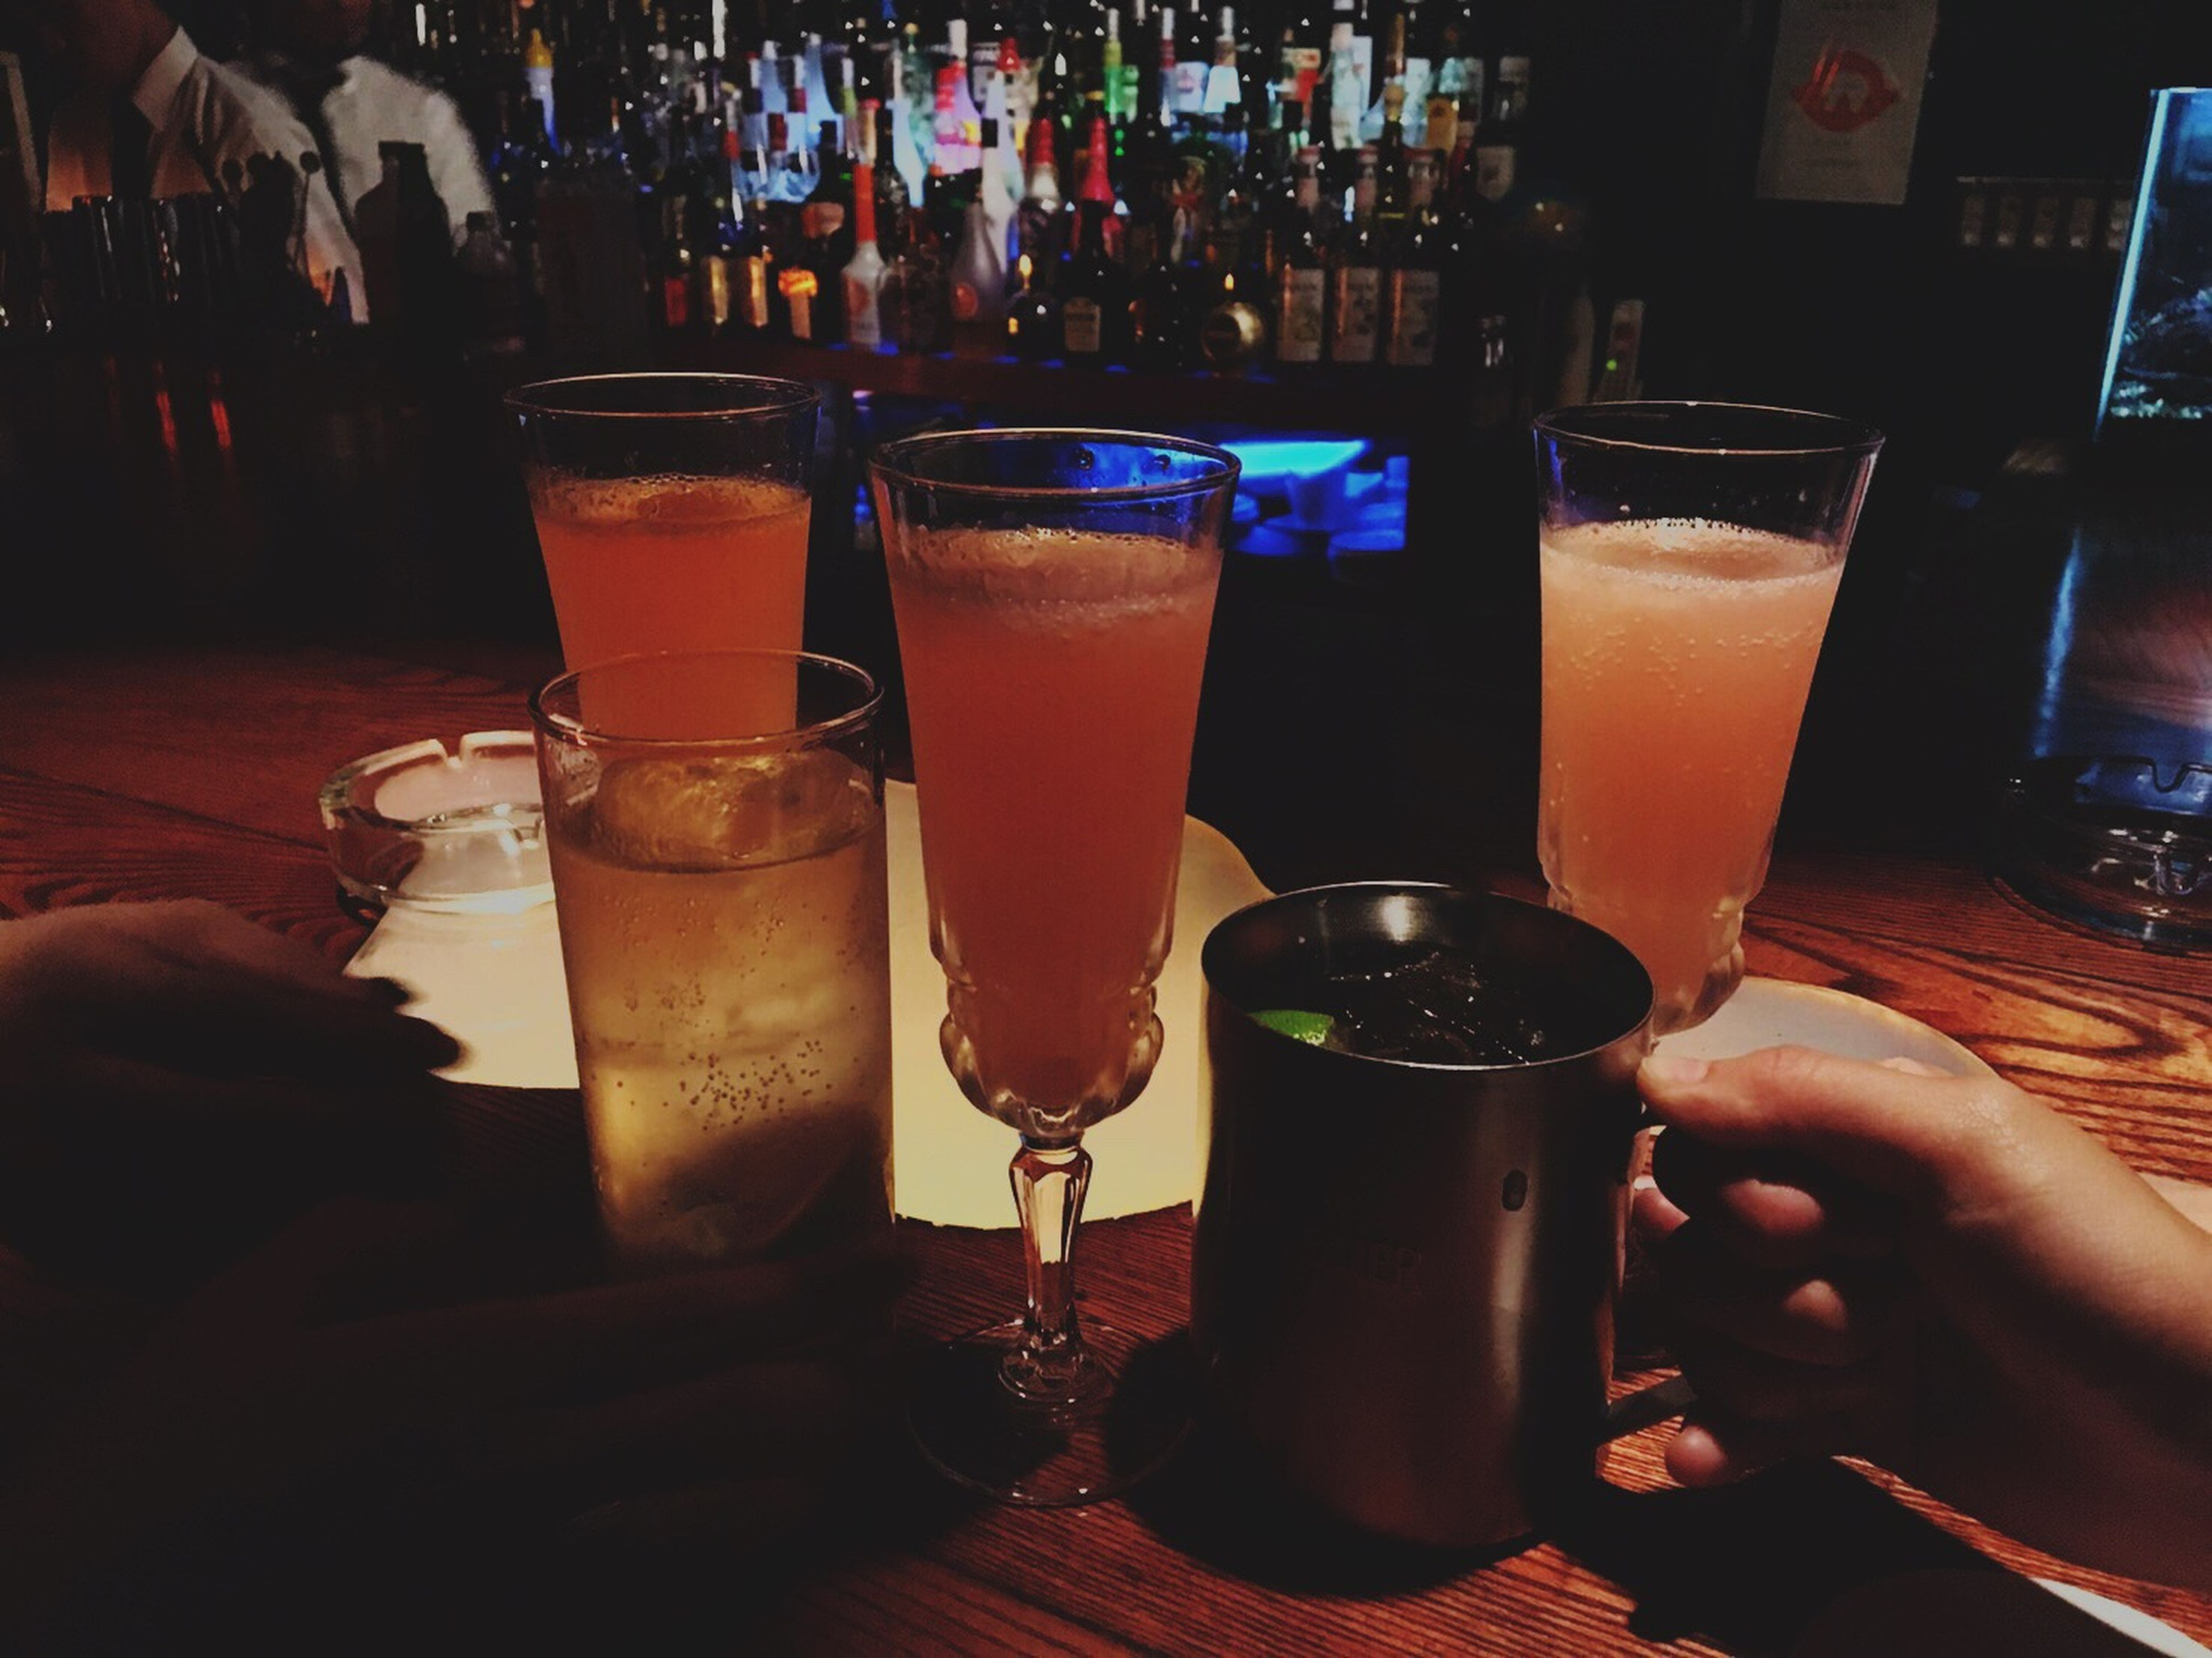 drink, food and drink, refreshment, table, drinking glass, alcohol, freshness, men, lifestyles, person, holding, beer glass, restaurant, bar - drink establishment, beverage